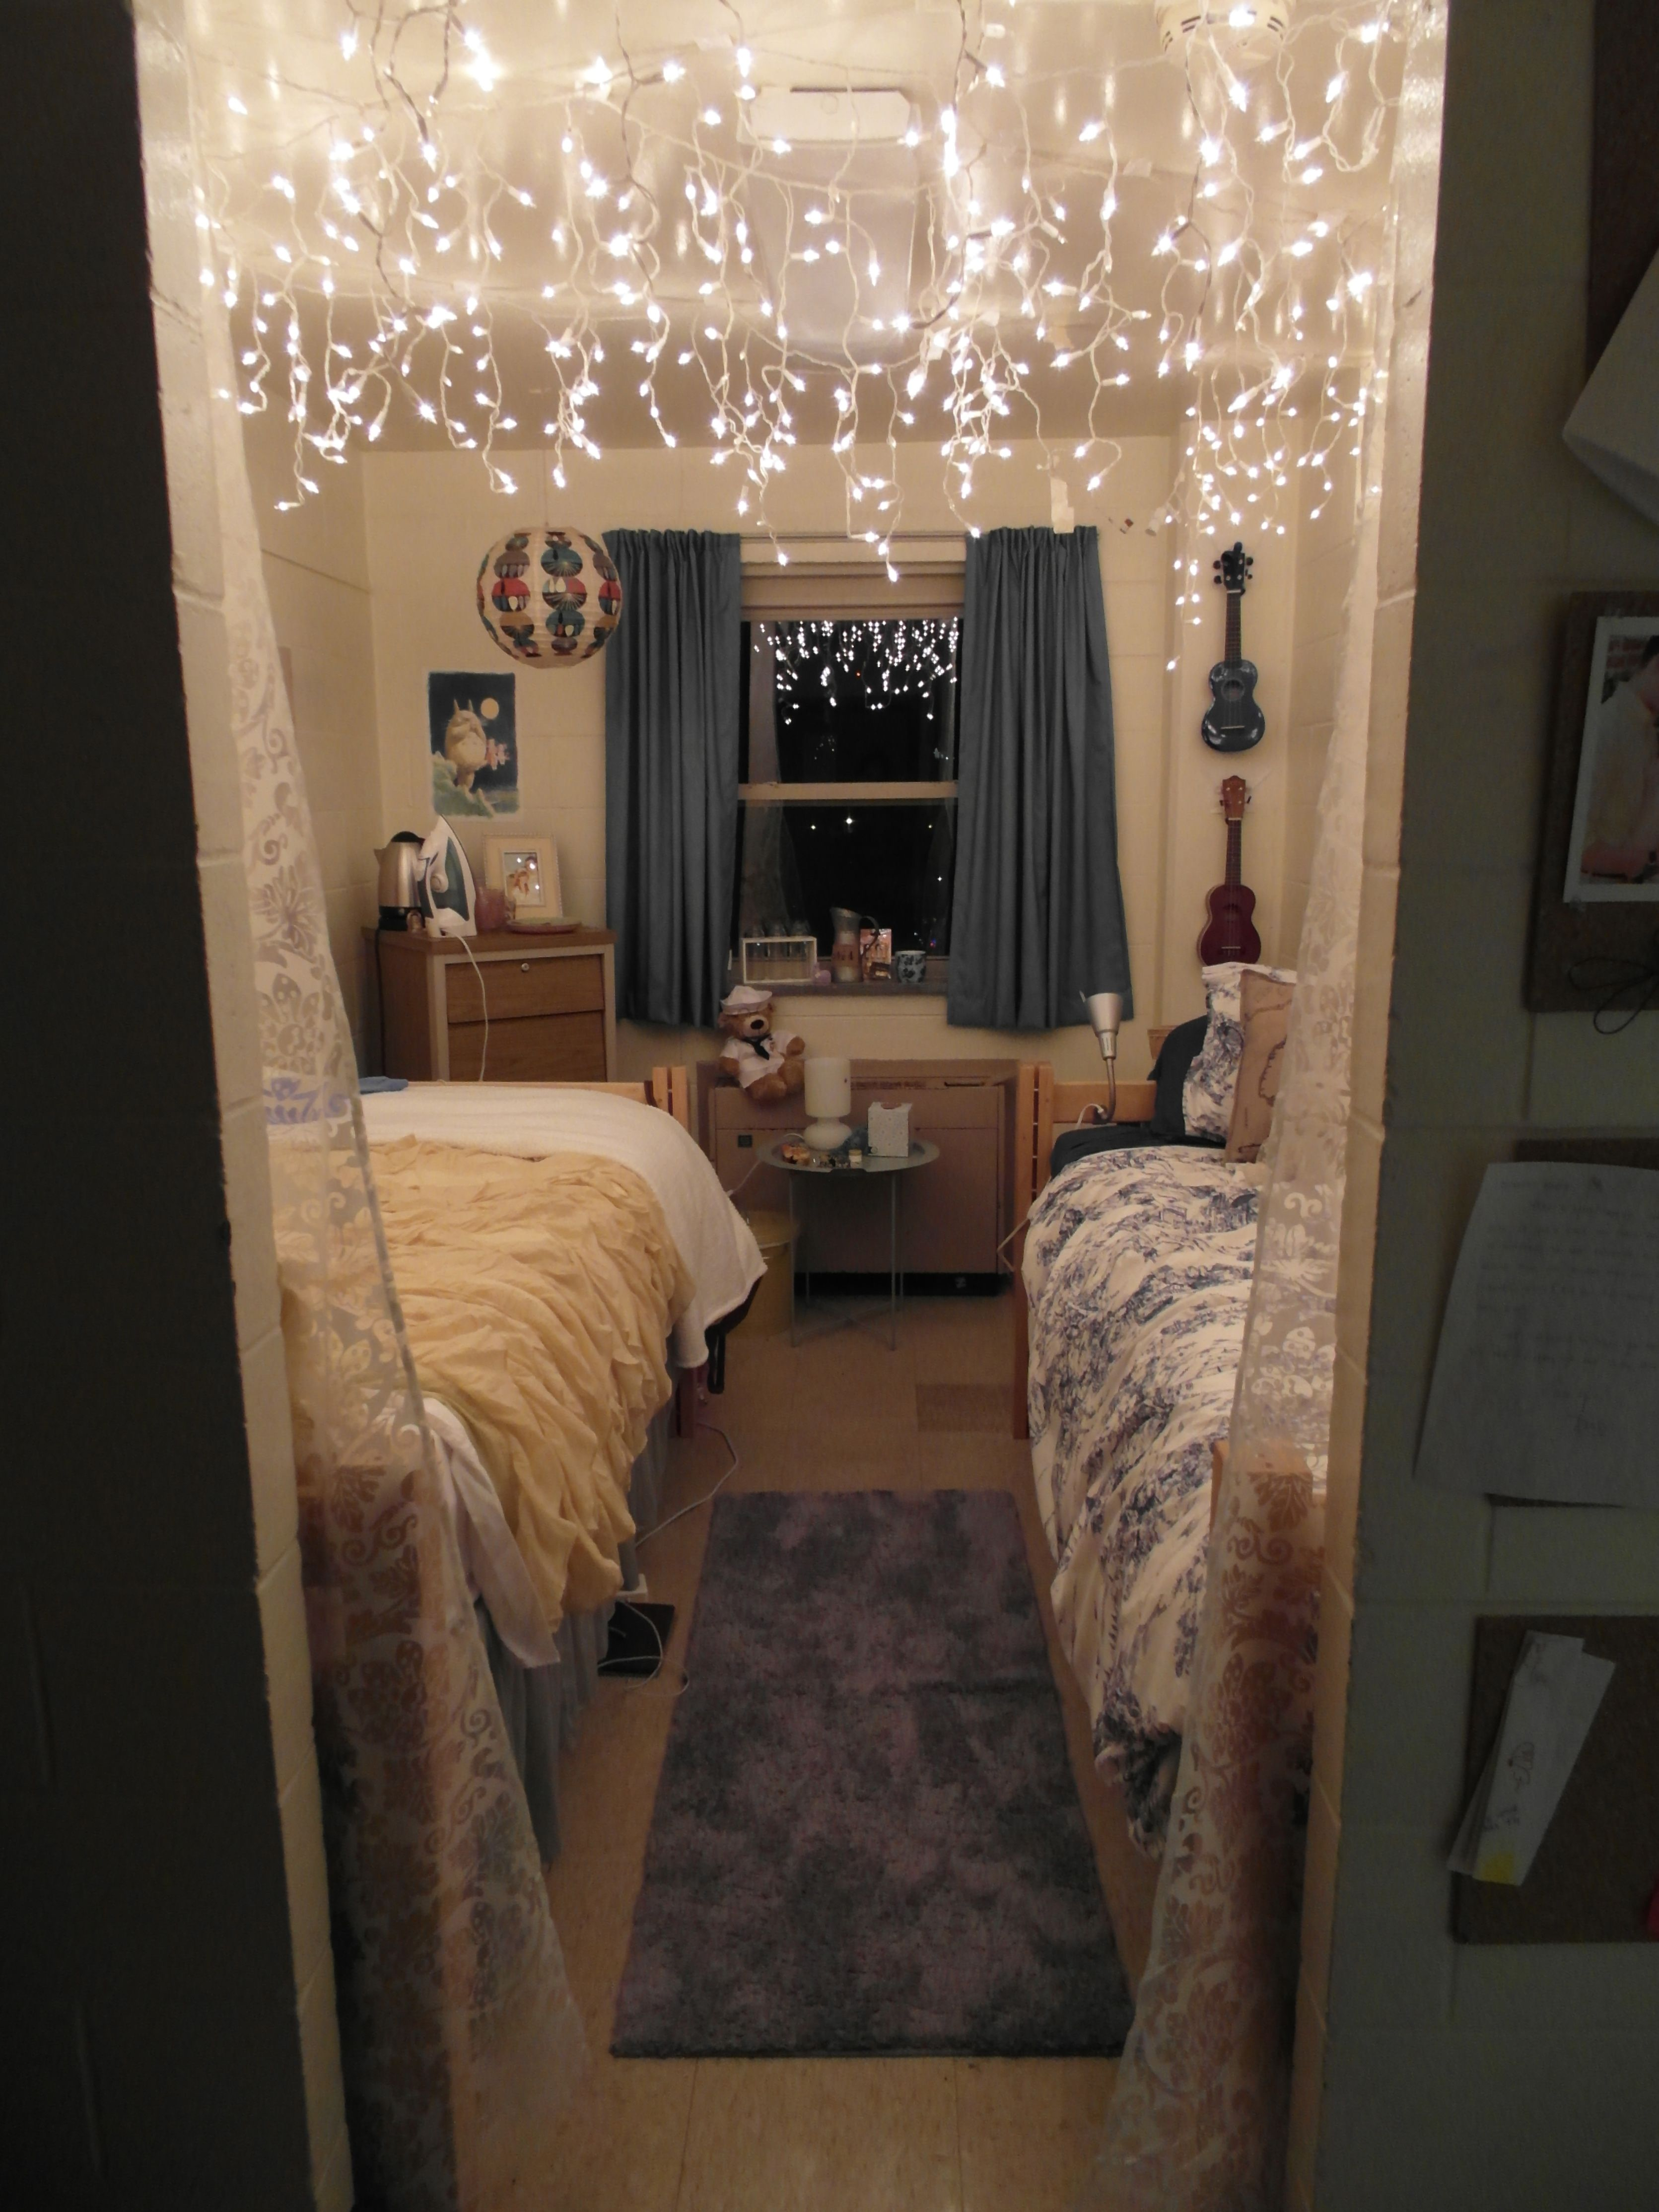 This Would Be Really Cool If You Could Figure Out A Way To Get Them To.  Lights In Dorm RoomIcicle ... Part 84